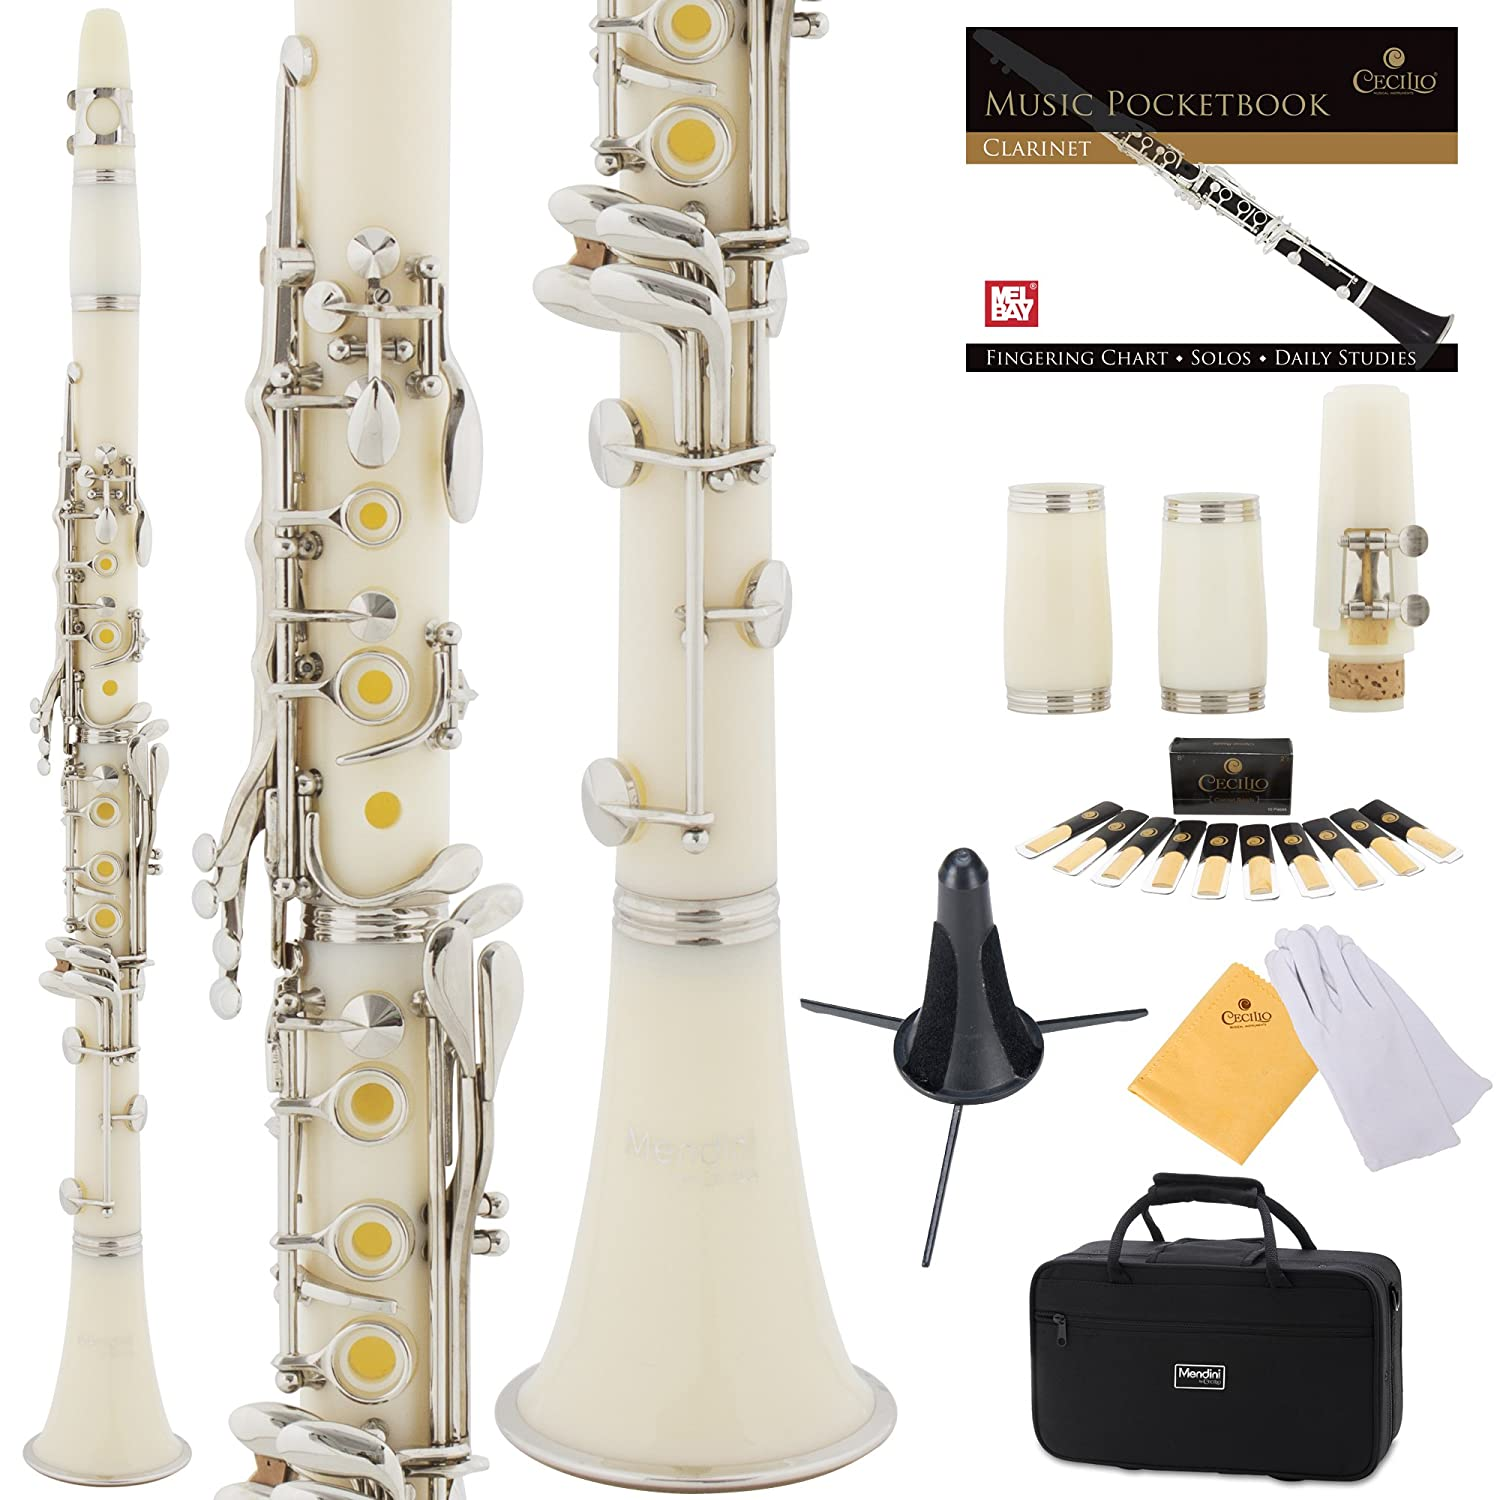 Mendini White ABS B Flat Clarinet with 2 Barrels, Case, Stand, Pocketbook, Mouthpiece, 10 Reeds and More, MCT-2W Cecilio Musical Instruments MCT-2W+SD+PB